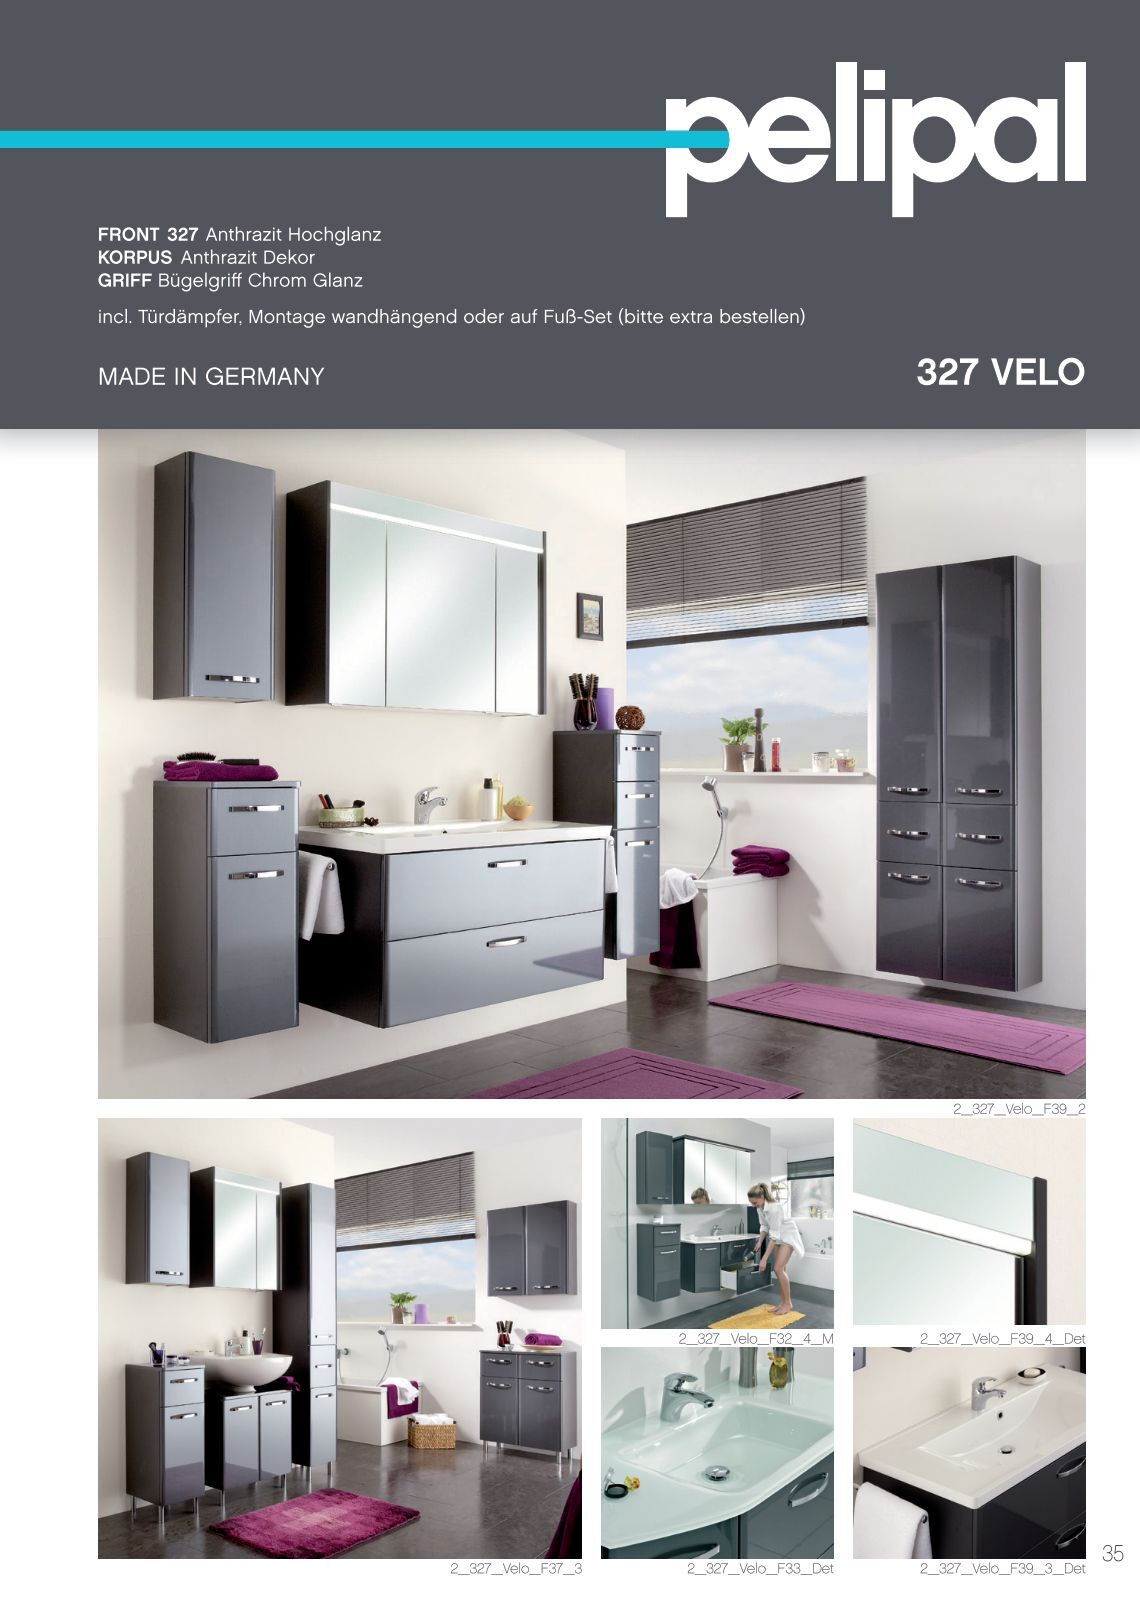 130 free magazines from pelipal de. Black Bedroom Furniture Sets. Home Design Ideas